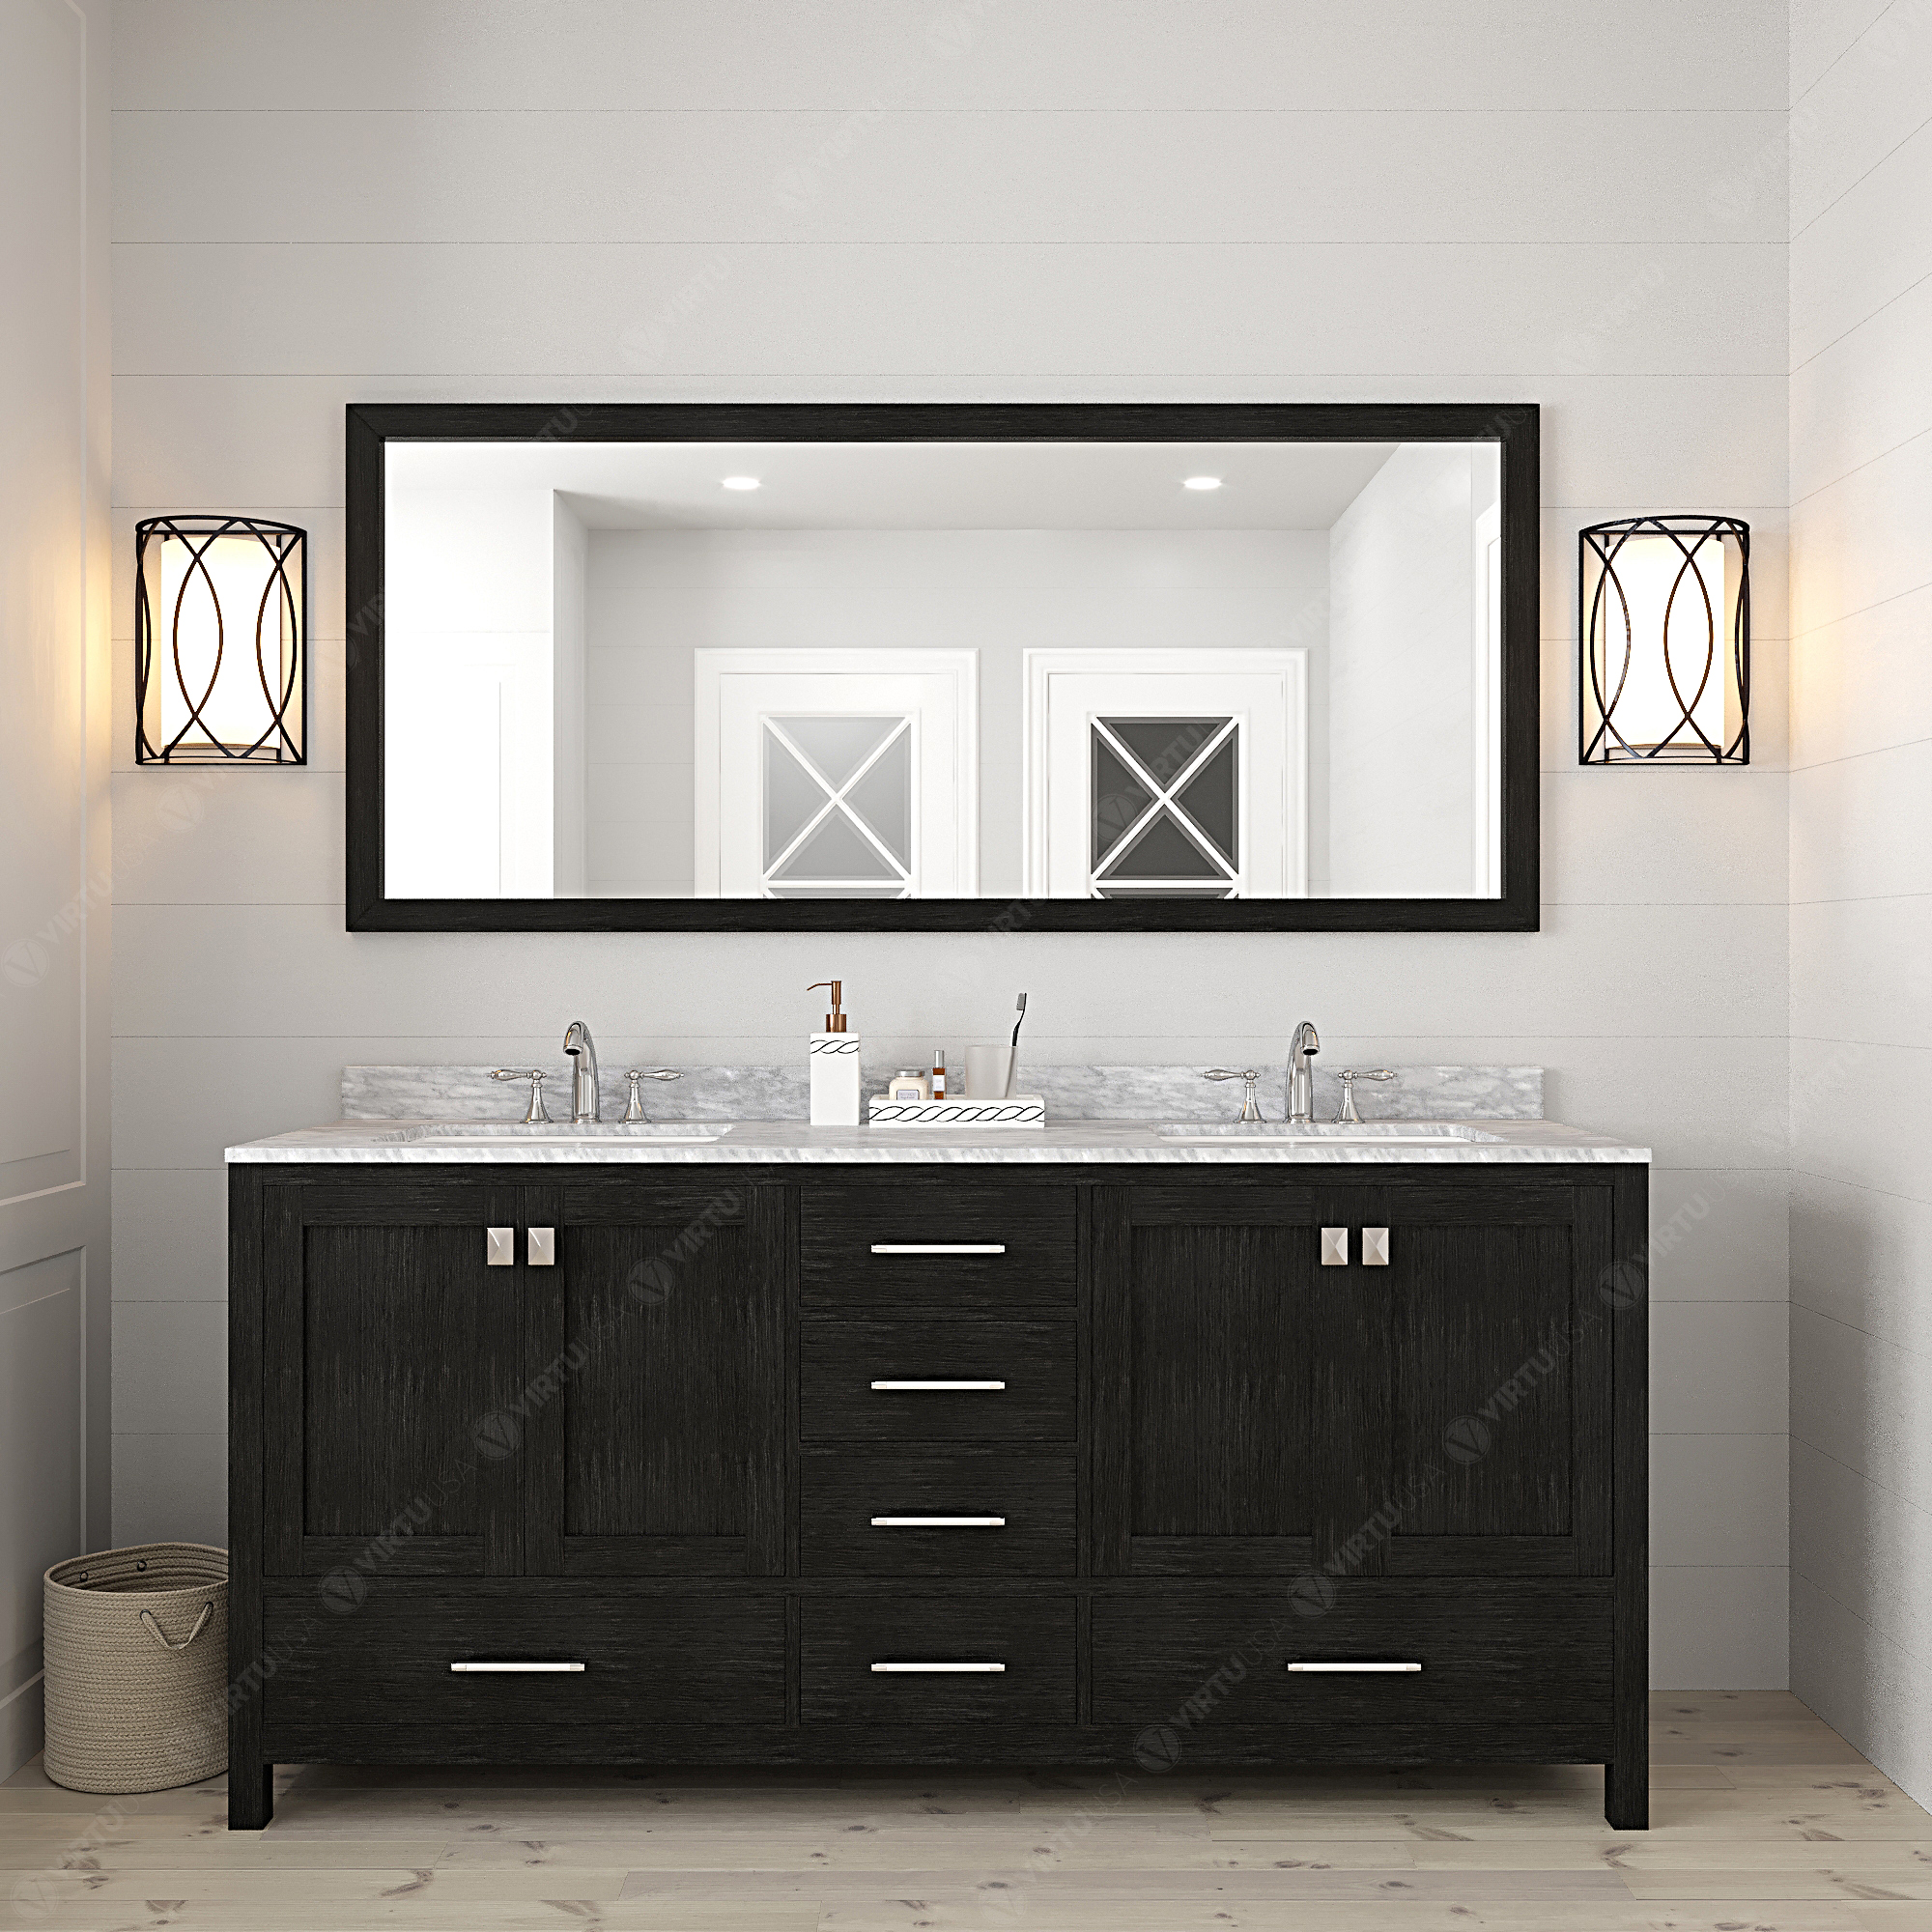 72 inch Vanity Color Ideas for your Bathroom Remodel - Luxury Living ...